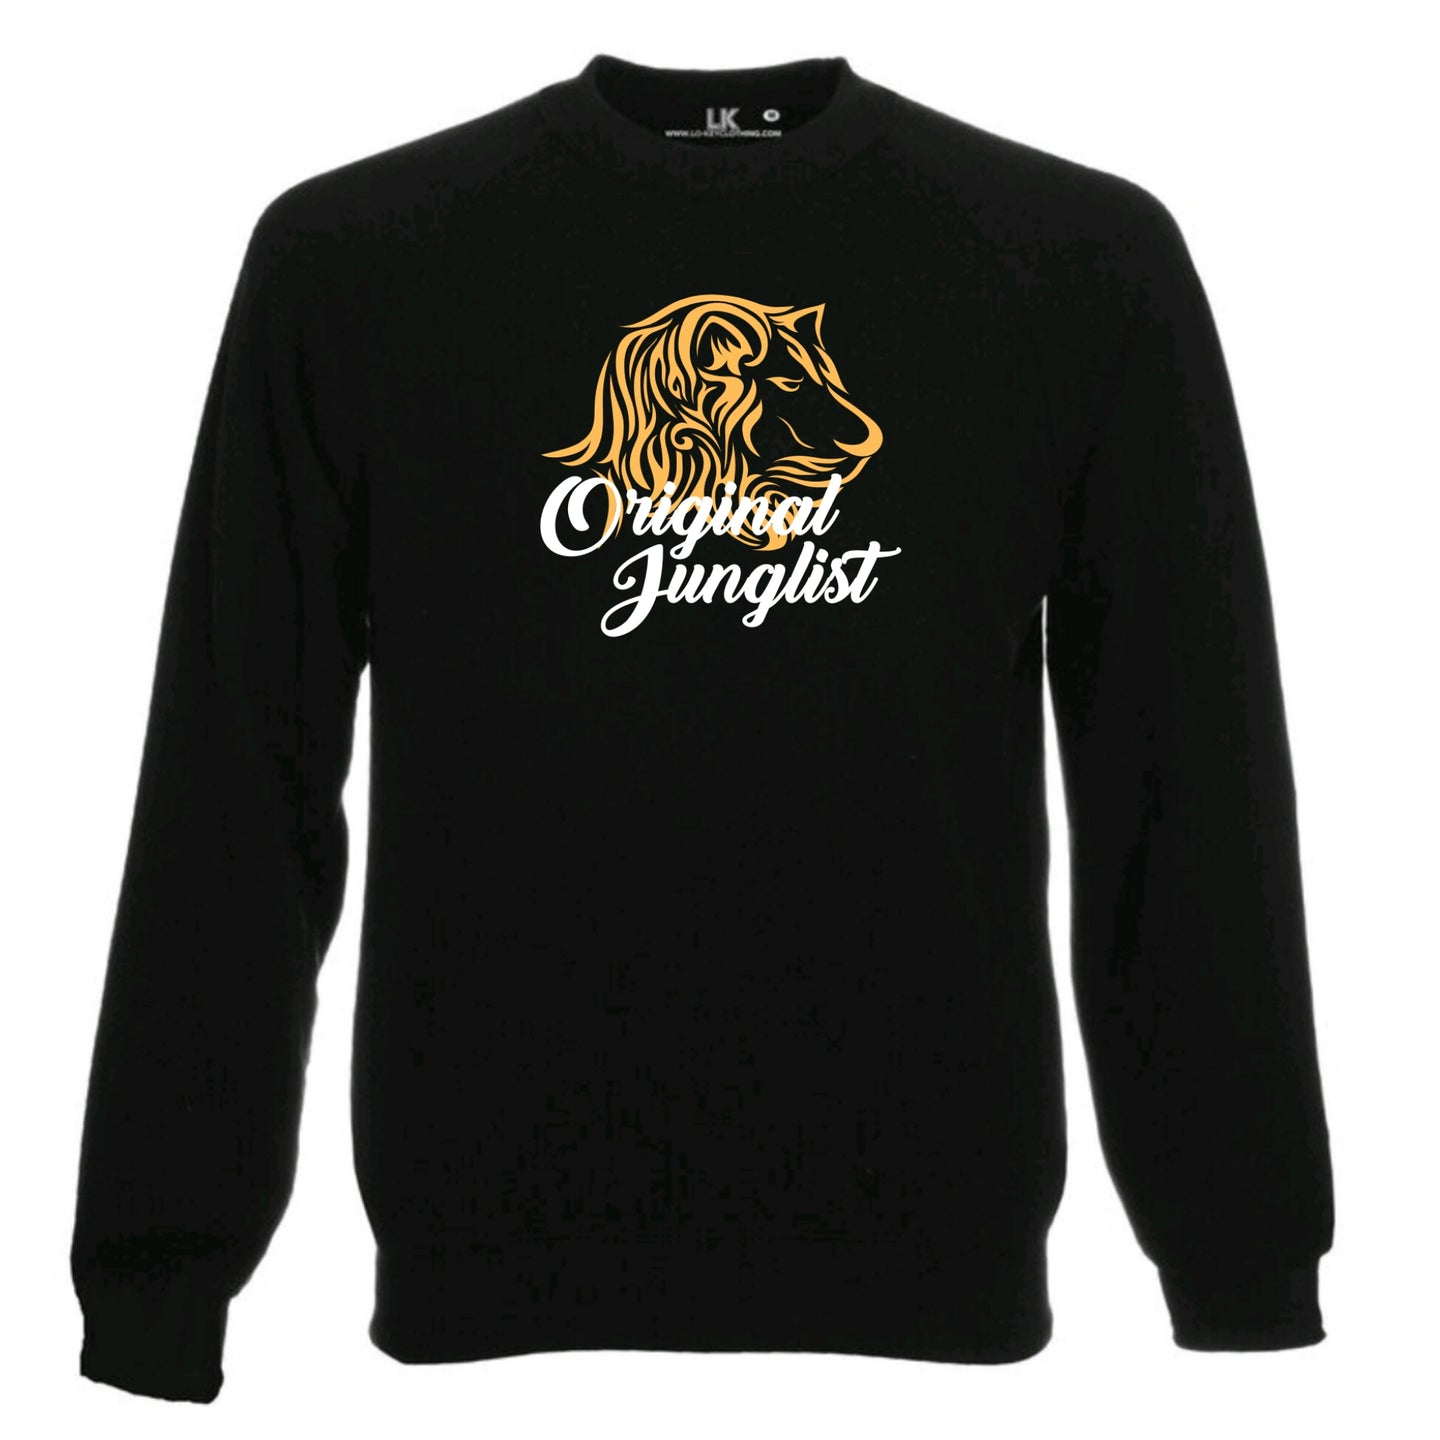 Original Junglist Lion Sweatshirt